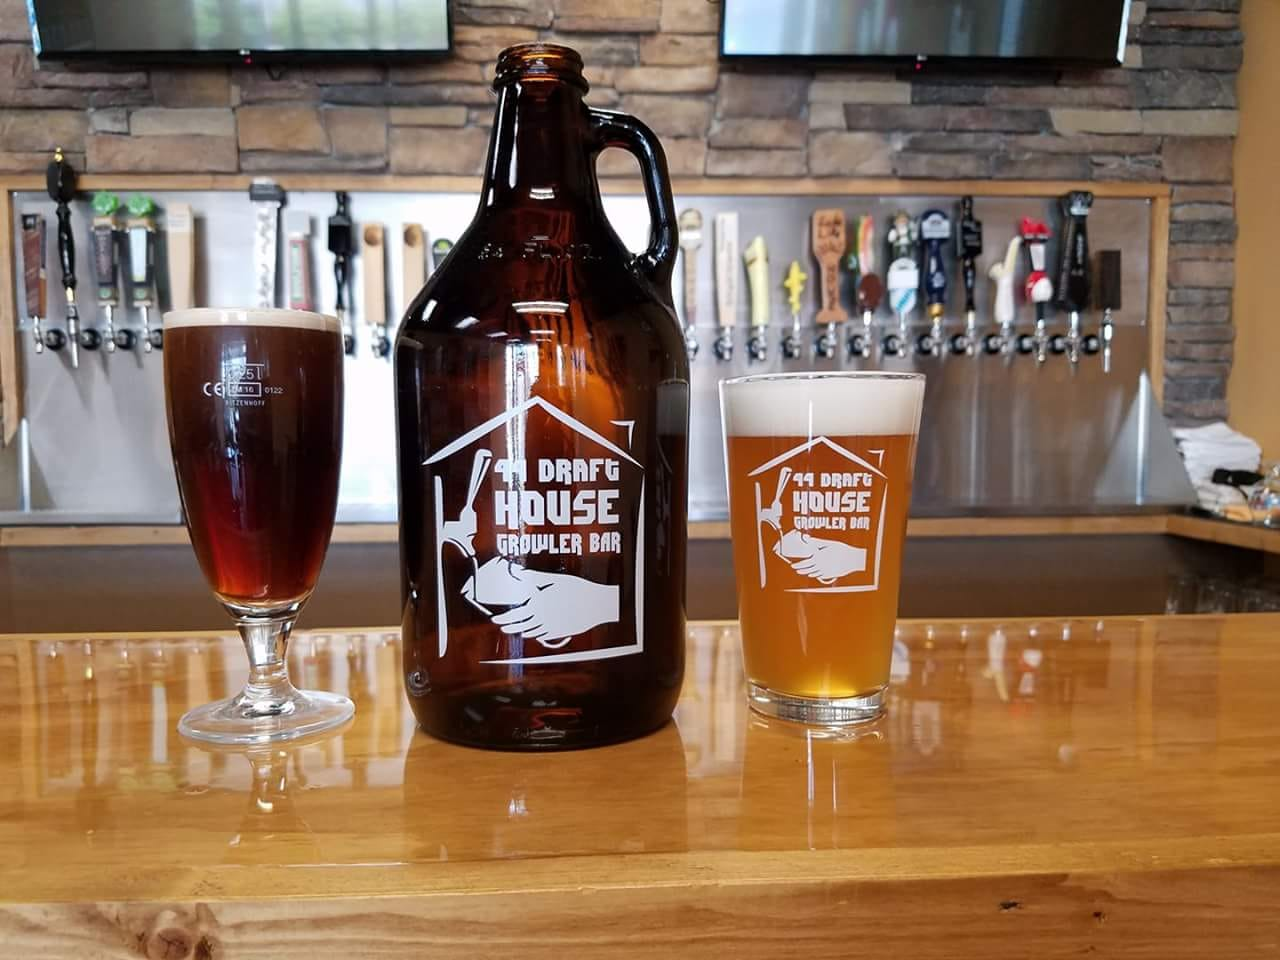 44 Draft House and Growler Bar | LakeOconeeLife.com